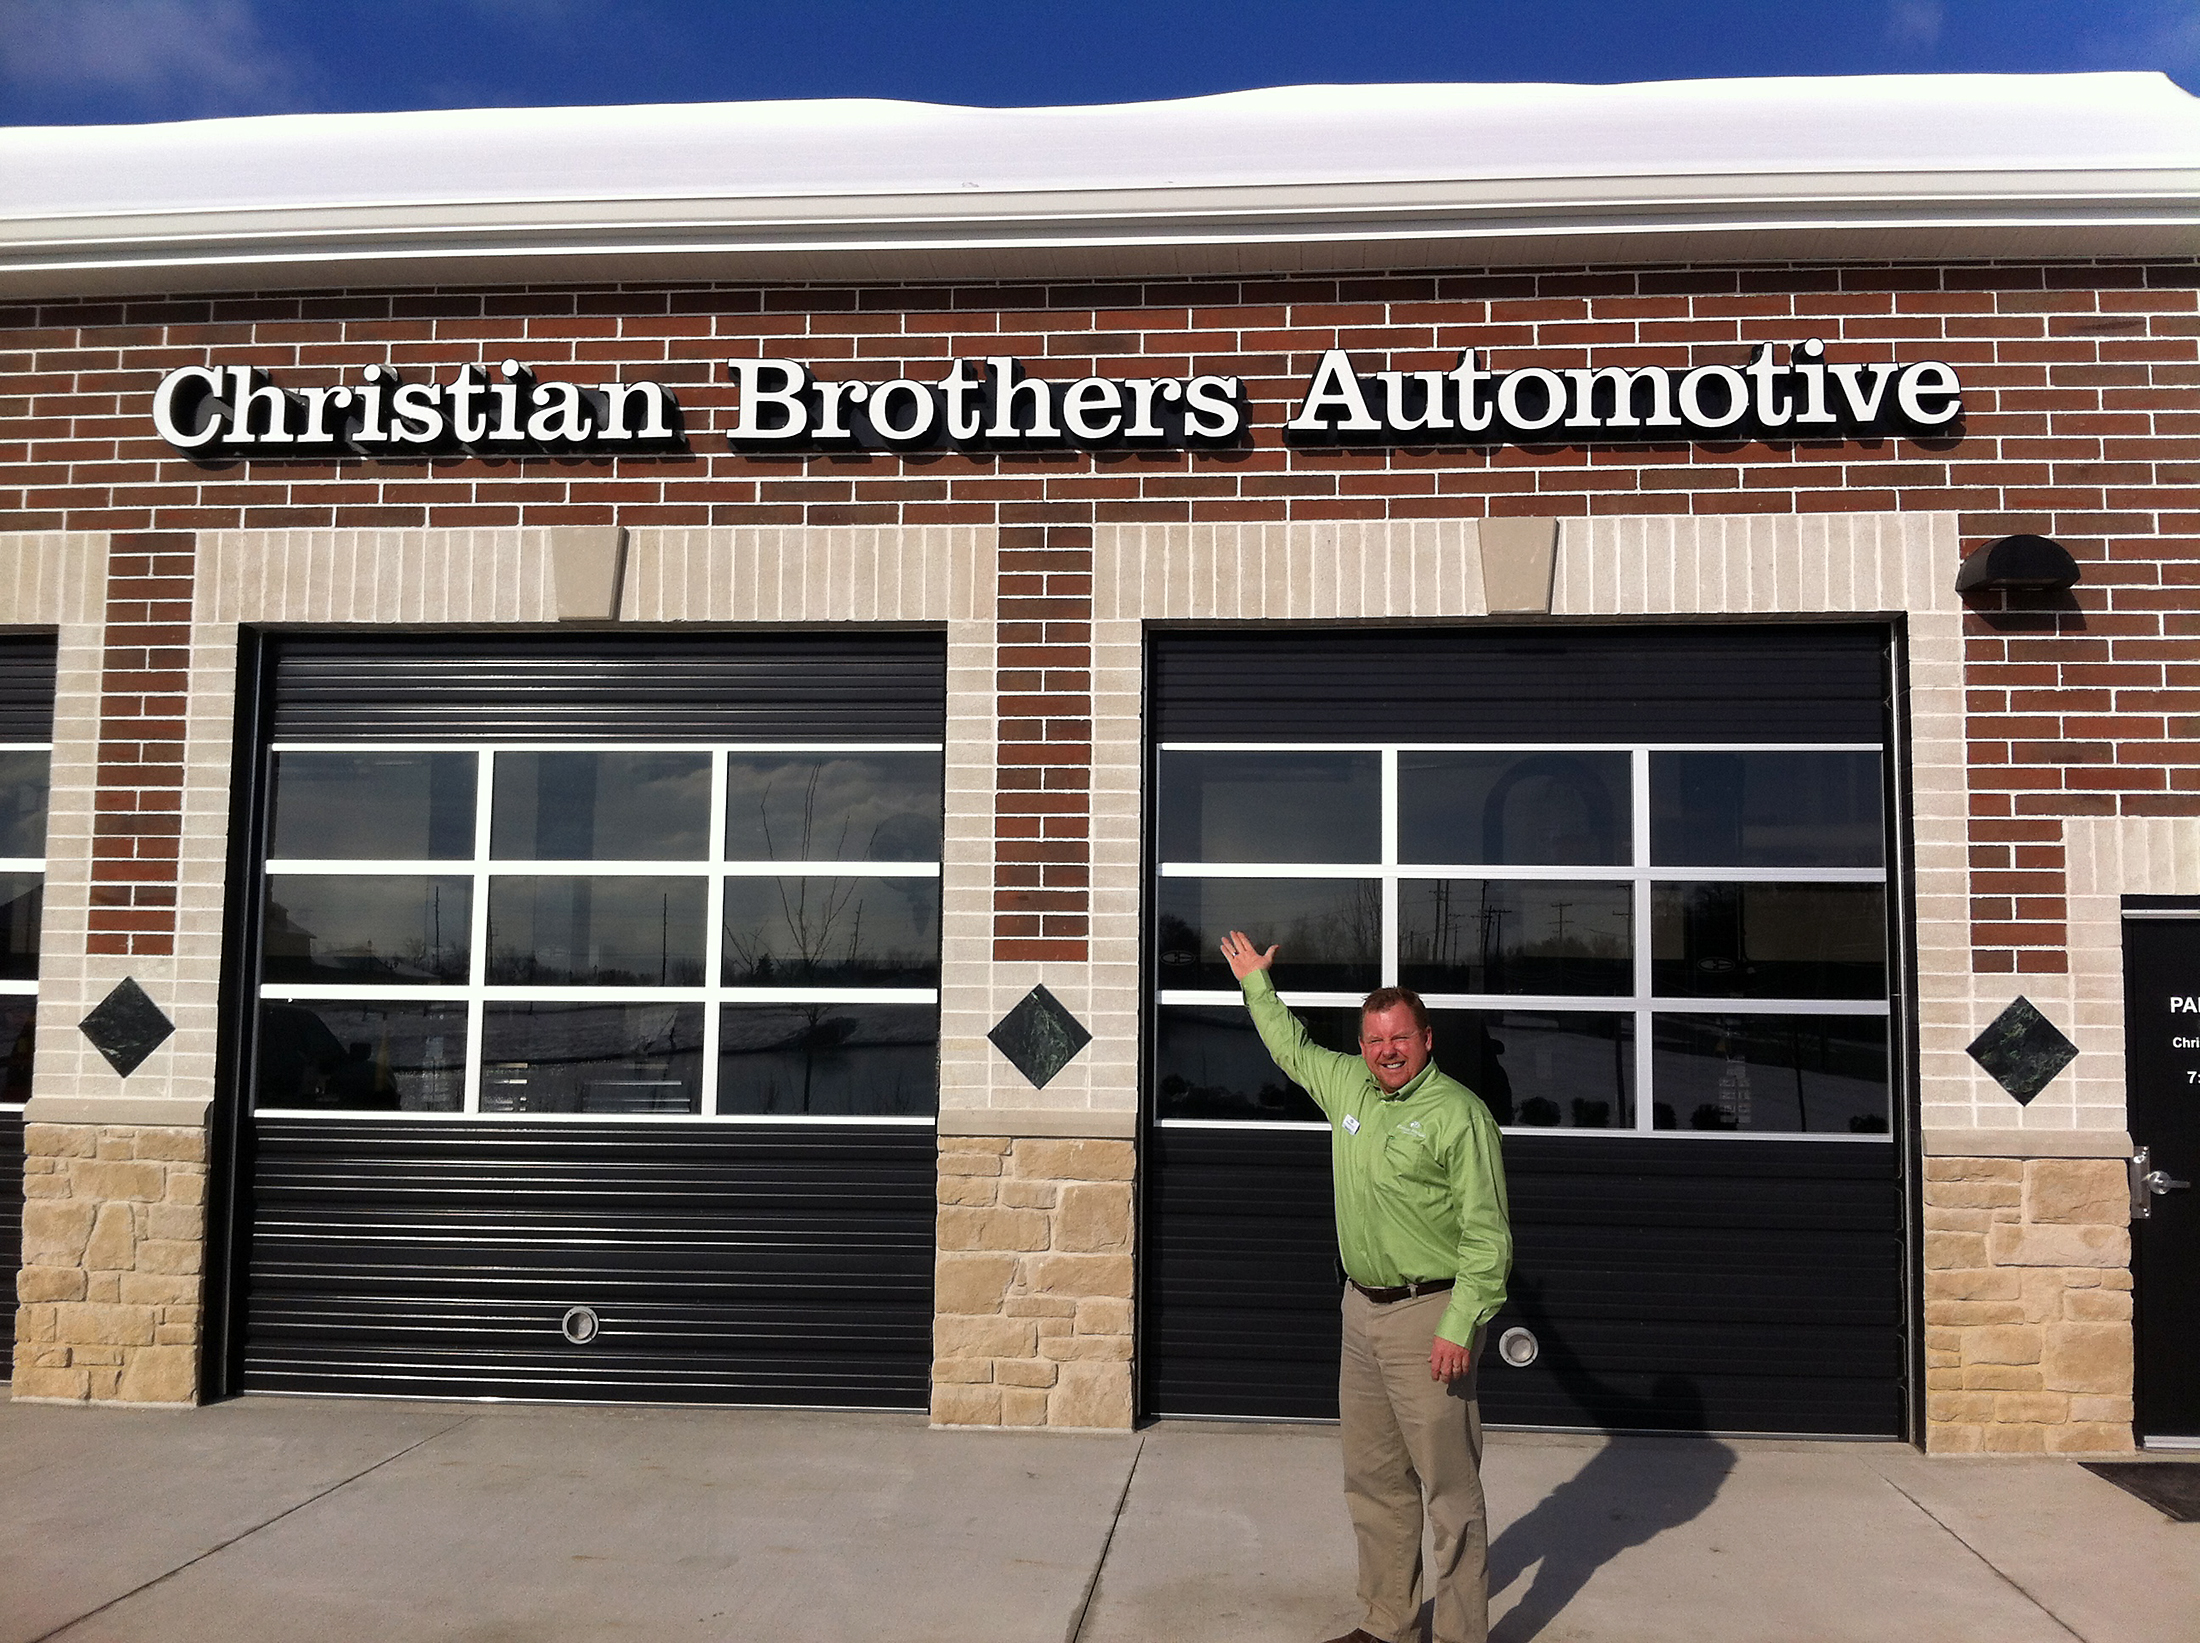 Russ Miller opened the doors of Christian Brothers Automotive, 14807 N. Gray Rd., on Dec. 3. (Photo by Ron Hermann.)